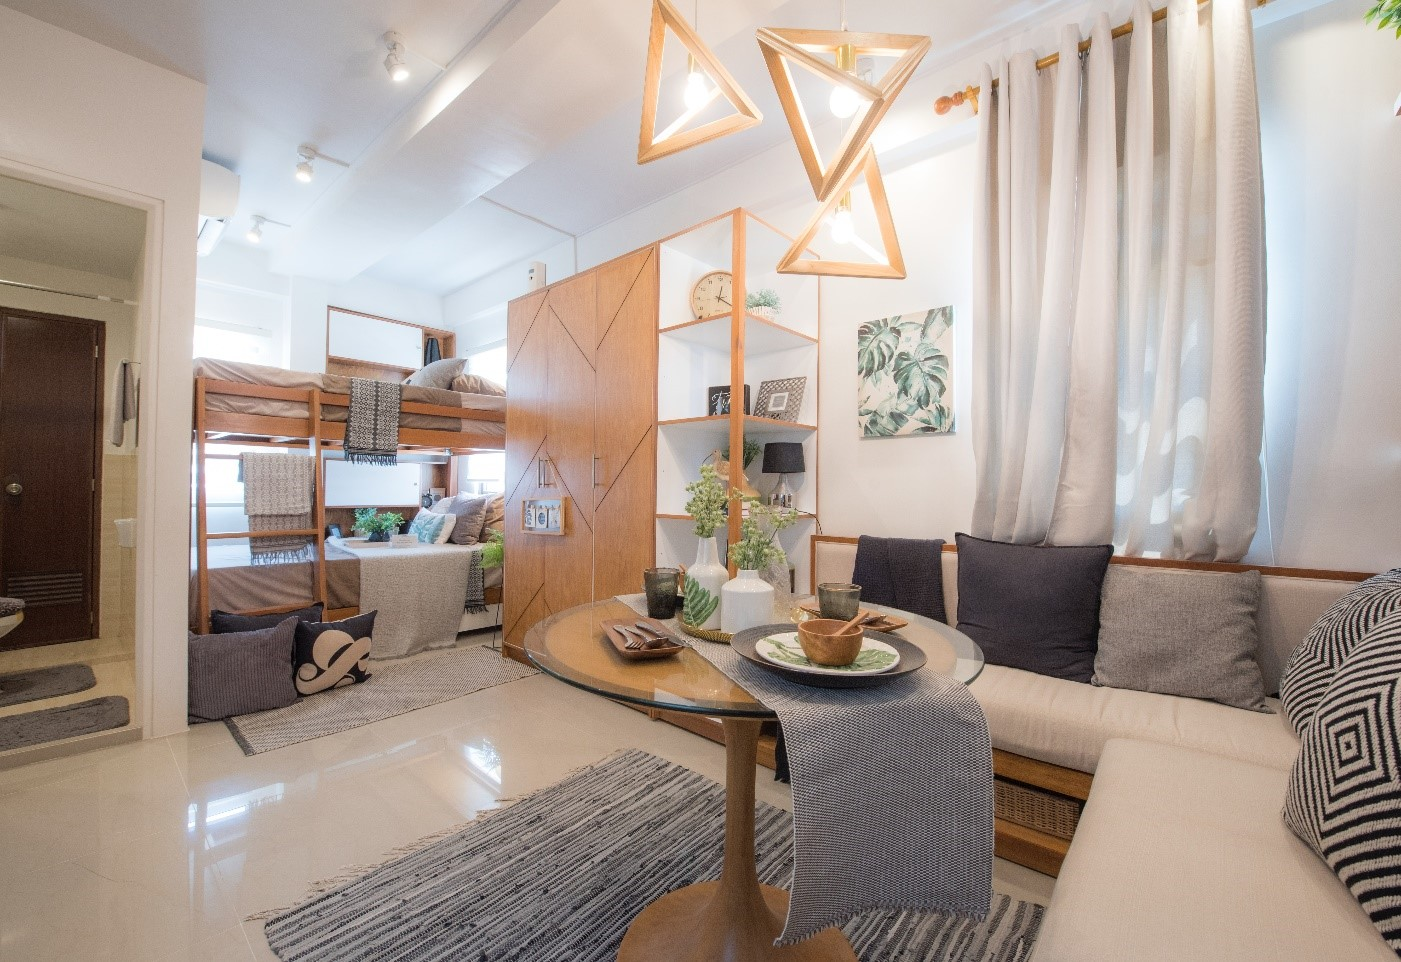 Narrow homes how to solve it?  And learn about 10 advantages of it (the art of exploiting spaces in small homes) with an architectural lens 2020